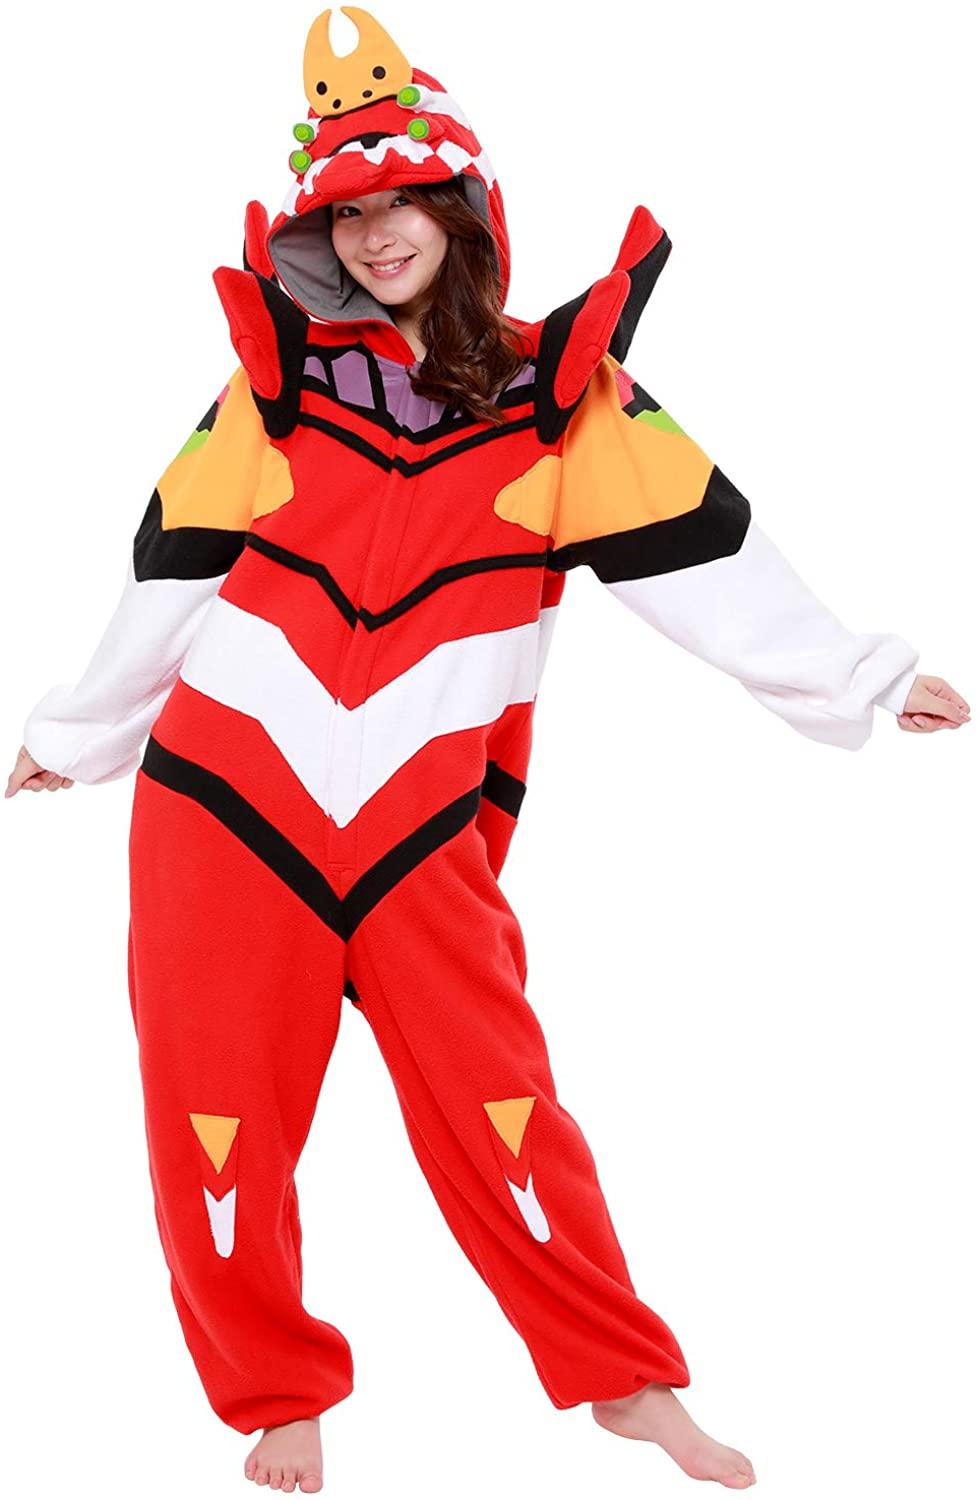 SAZAC Kigurumi - Evangelion Unit-02 - Eva-02 - Onesie Halloween Costume - Adult Red